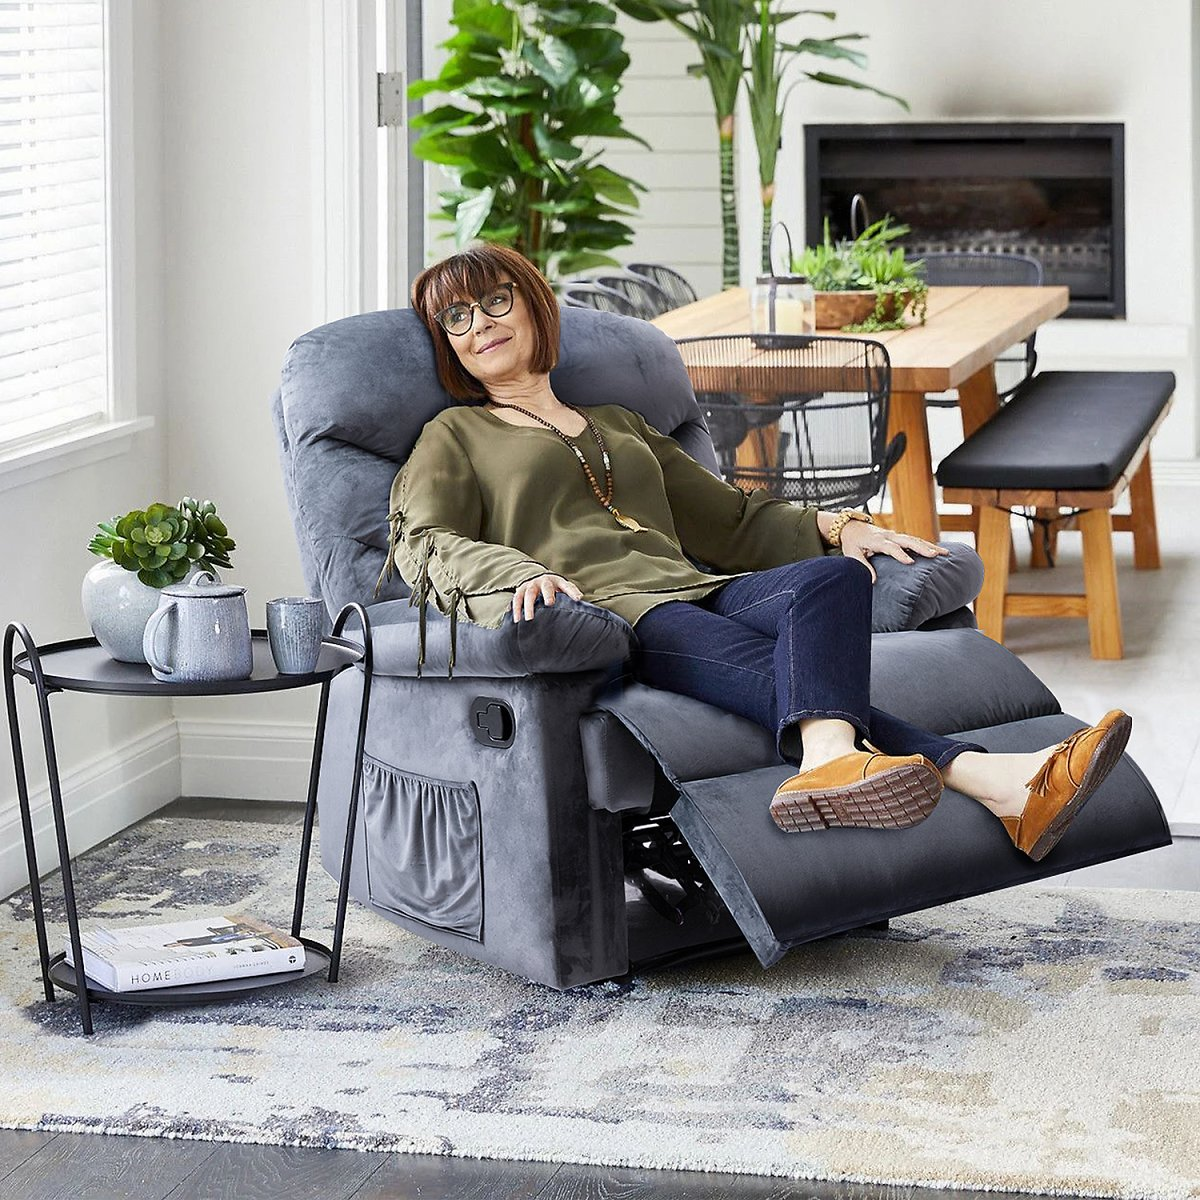 Walnew Manual Recliner with Massage and Huge Pocket, Gray Microfiber